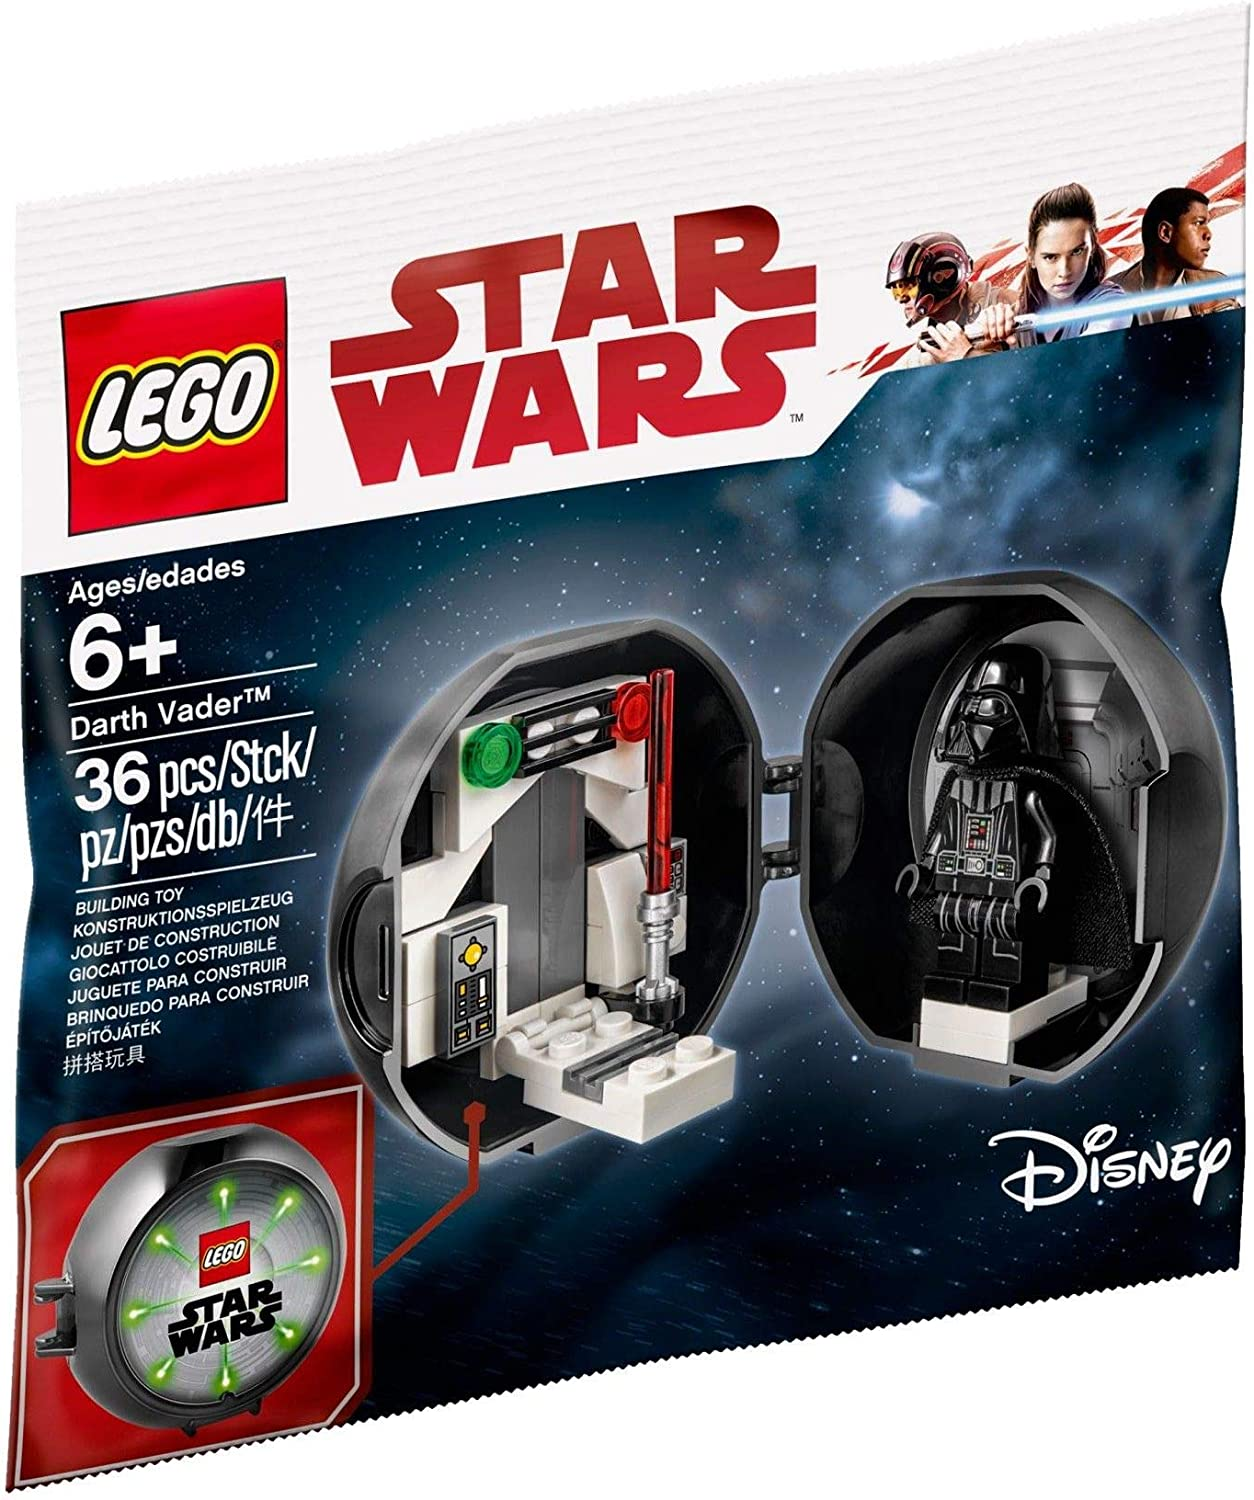 - Amazon.com: Lego Darth Vader Anniversary Pod Polybag 5005376: Toys